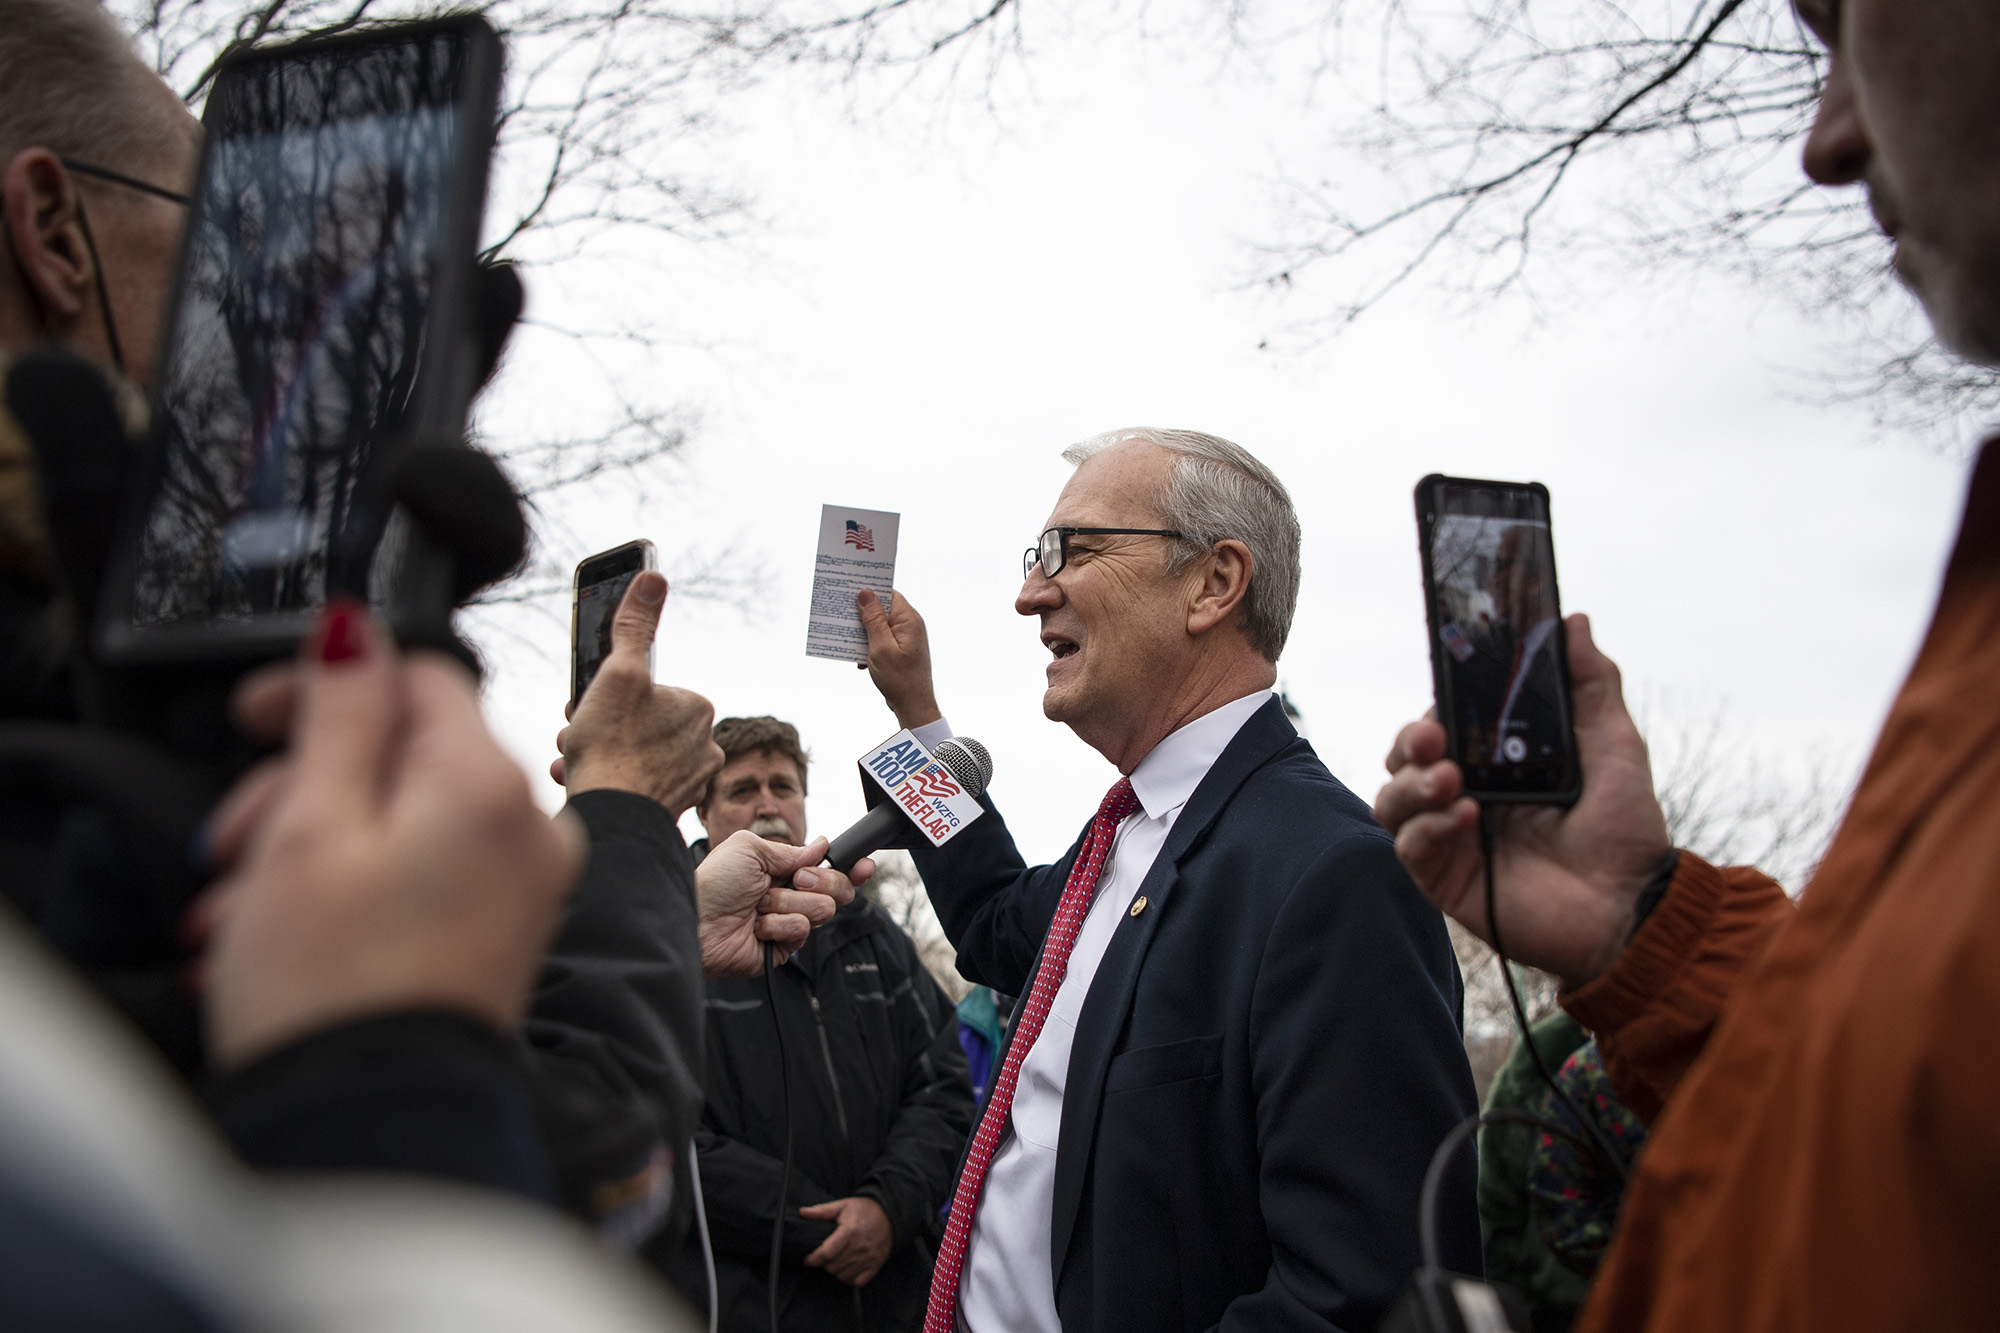 Sen. Kevin Cramer, R-N. Dak., holds up a copy of the Constitution while talking to Trump supporters in front of the U.S. Capitol in Washington DC, on Tuesday, January 5.